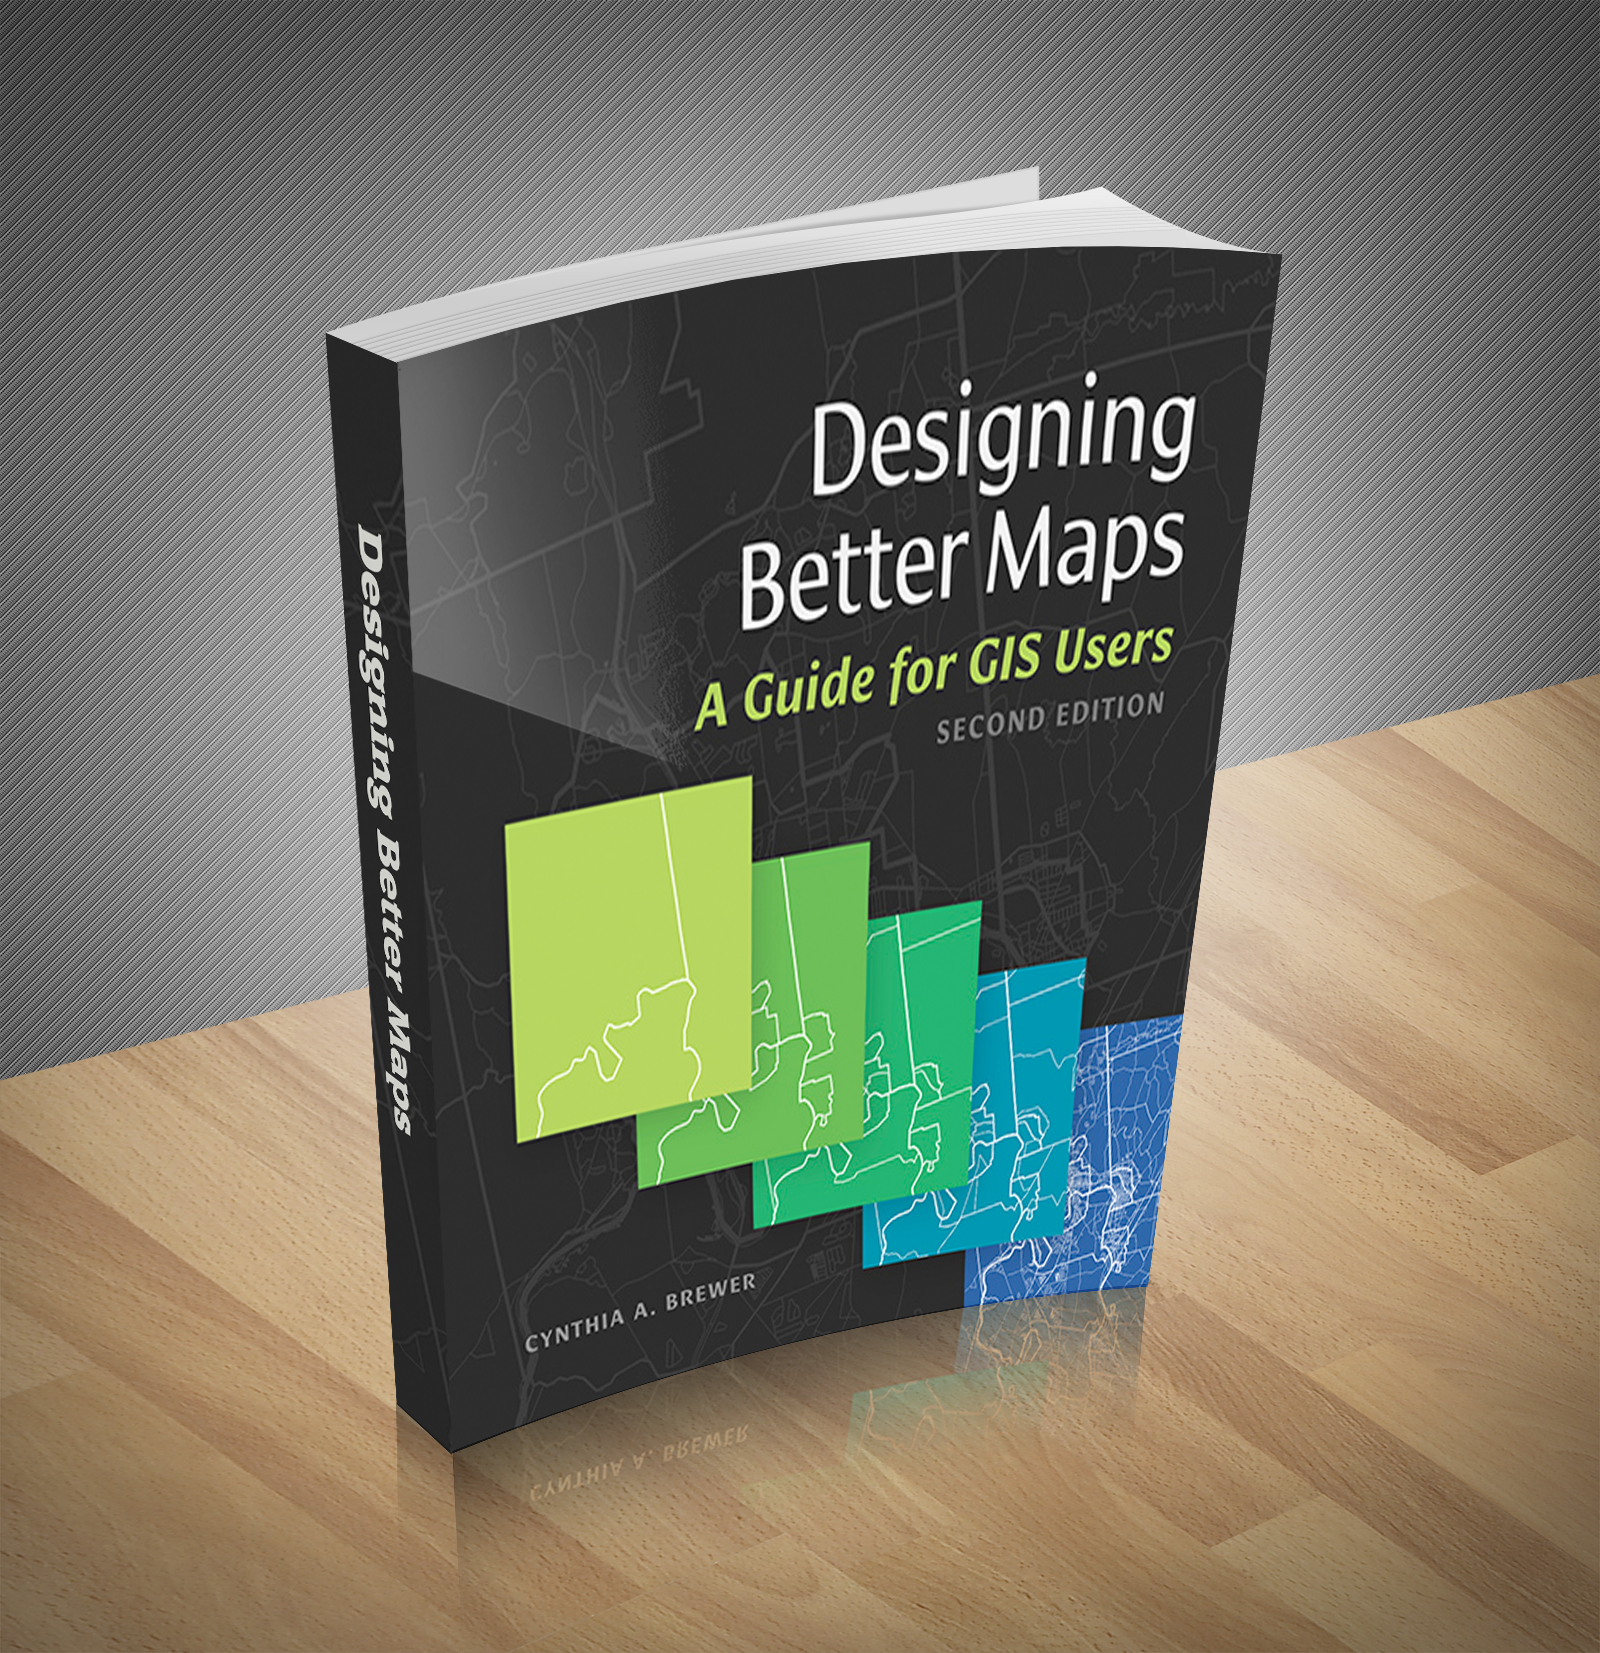 GIS Employment & Designing Better Maps: A Guide for GIS Users